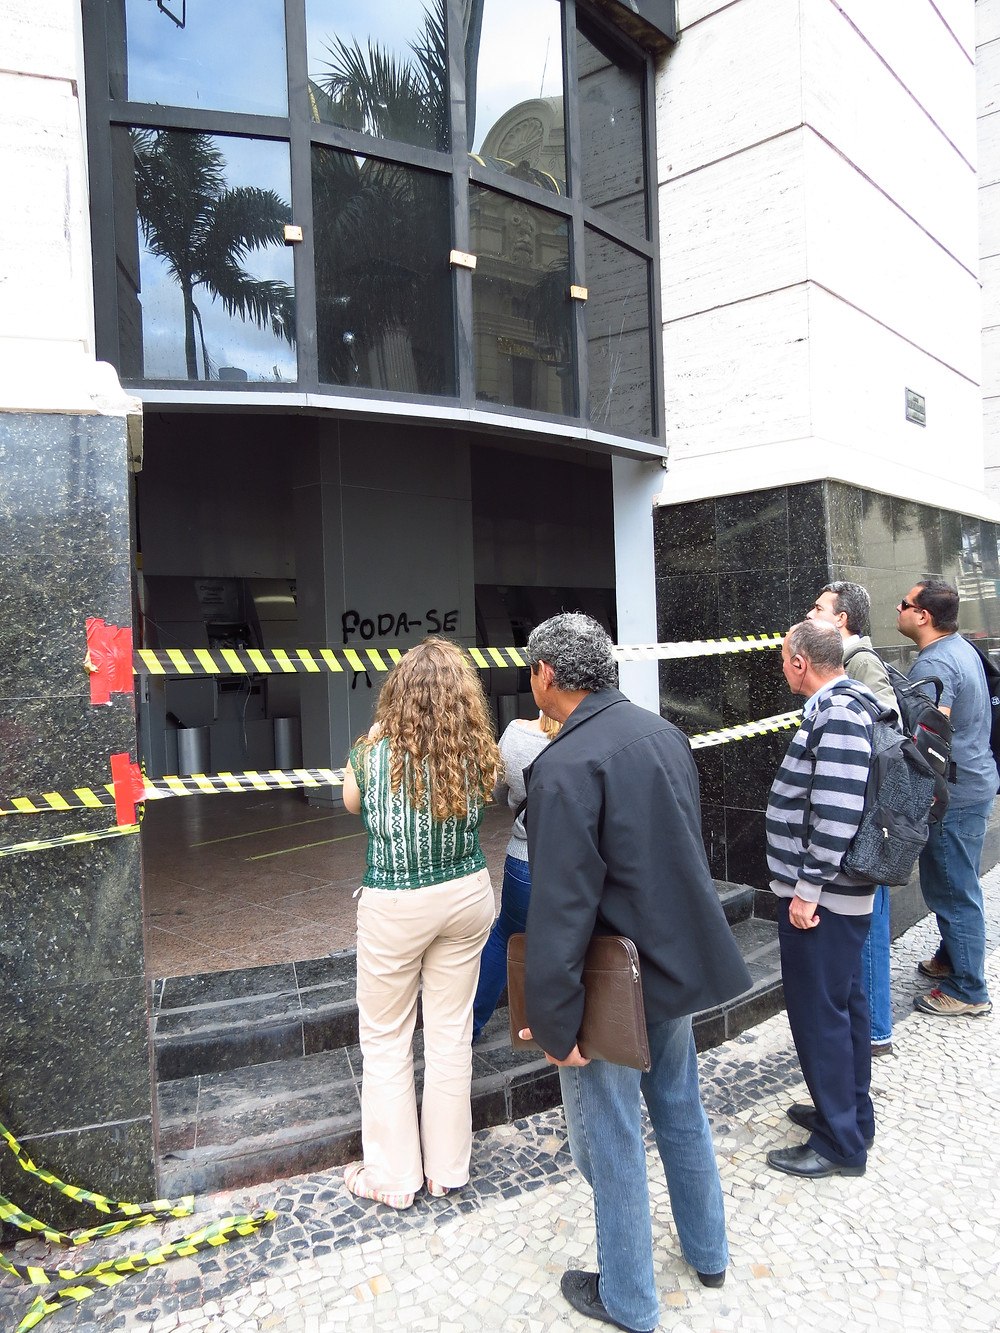 5. Bank of Brazil, Cinelandia square, Rio de Janeiro, 7 November 2013. The bank was hit and vandalized by protesters the night before. Passers-by are looking at the traces left by the range just a few hours earlier, with the darkness of the night.